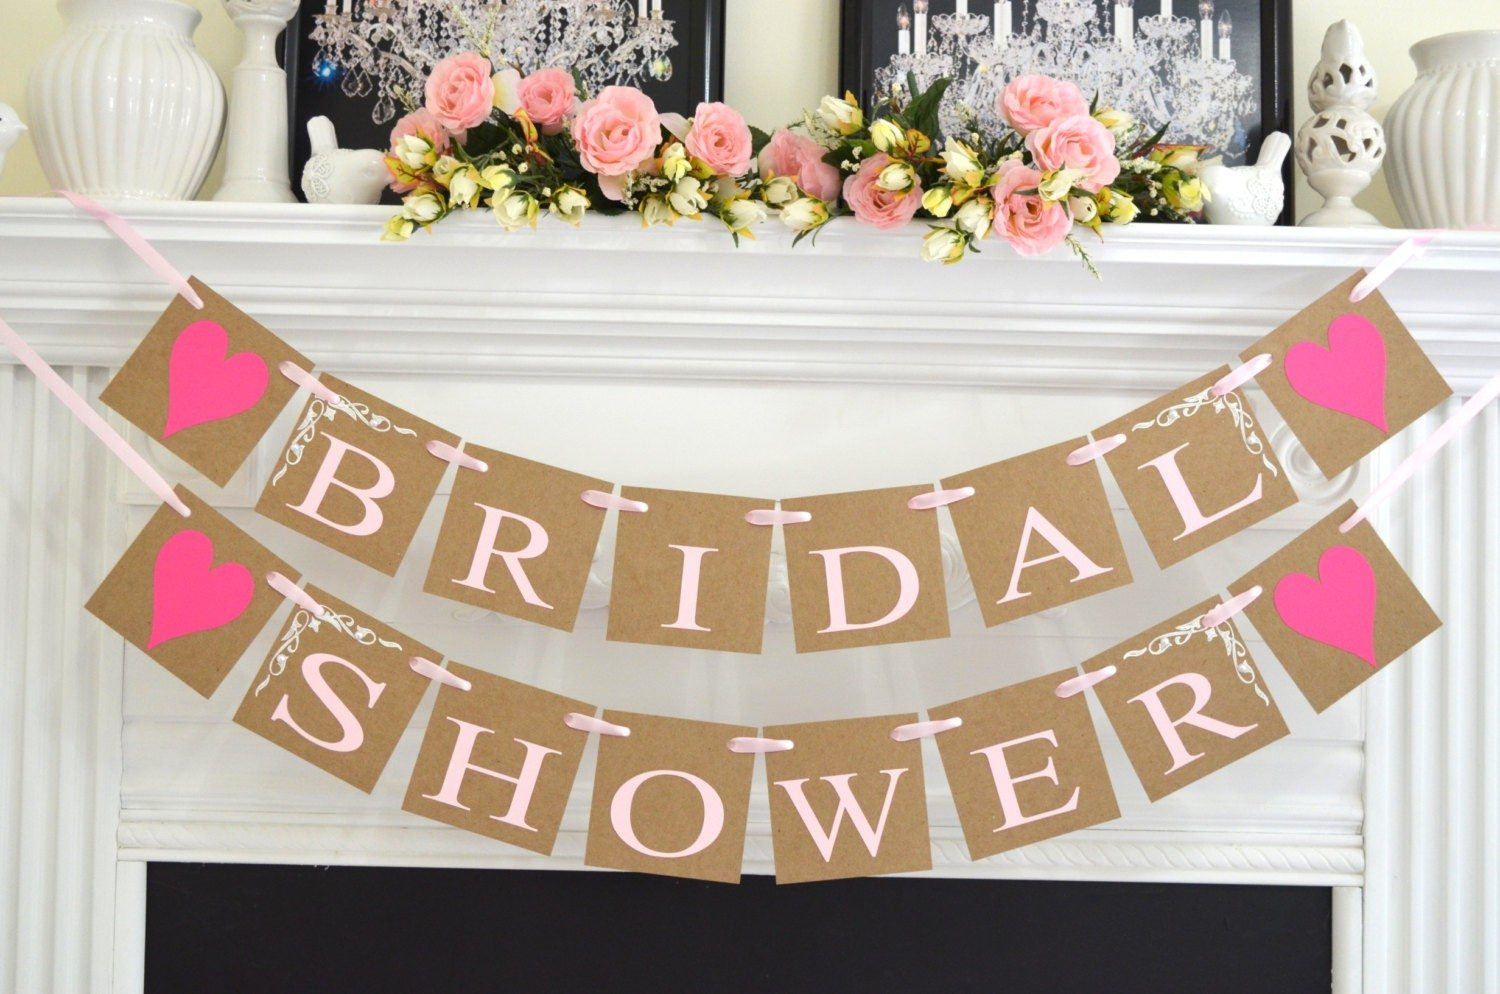 games wedding squared bridal theme fun themes shower ideas bridalgamesprintable